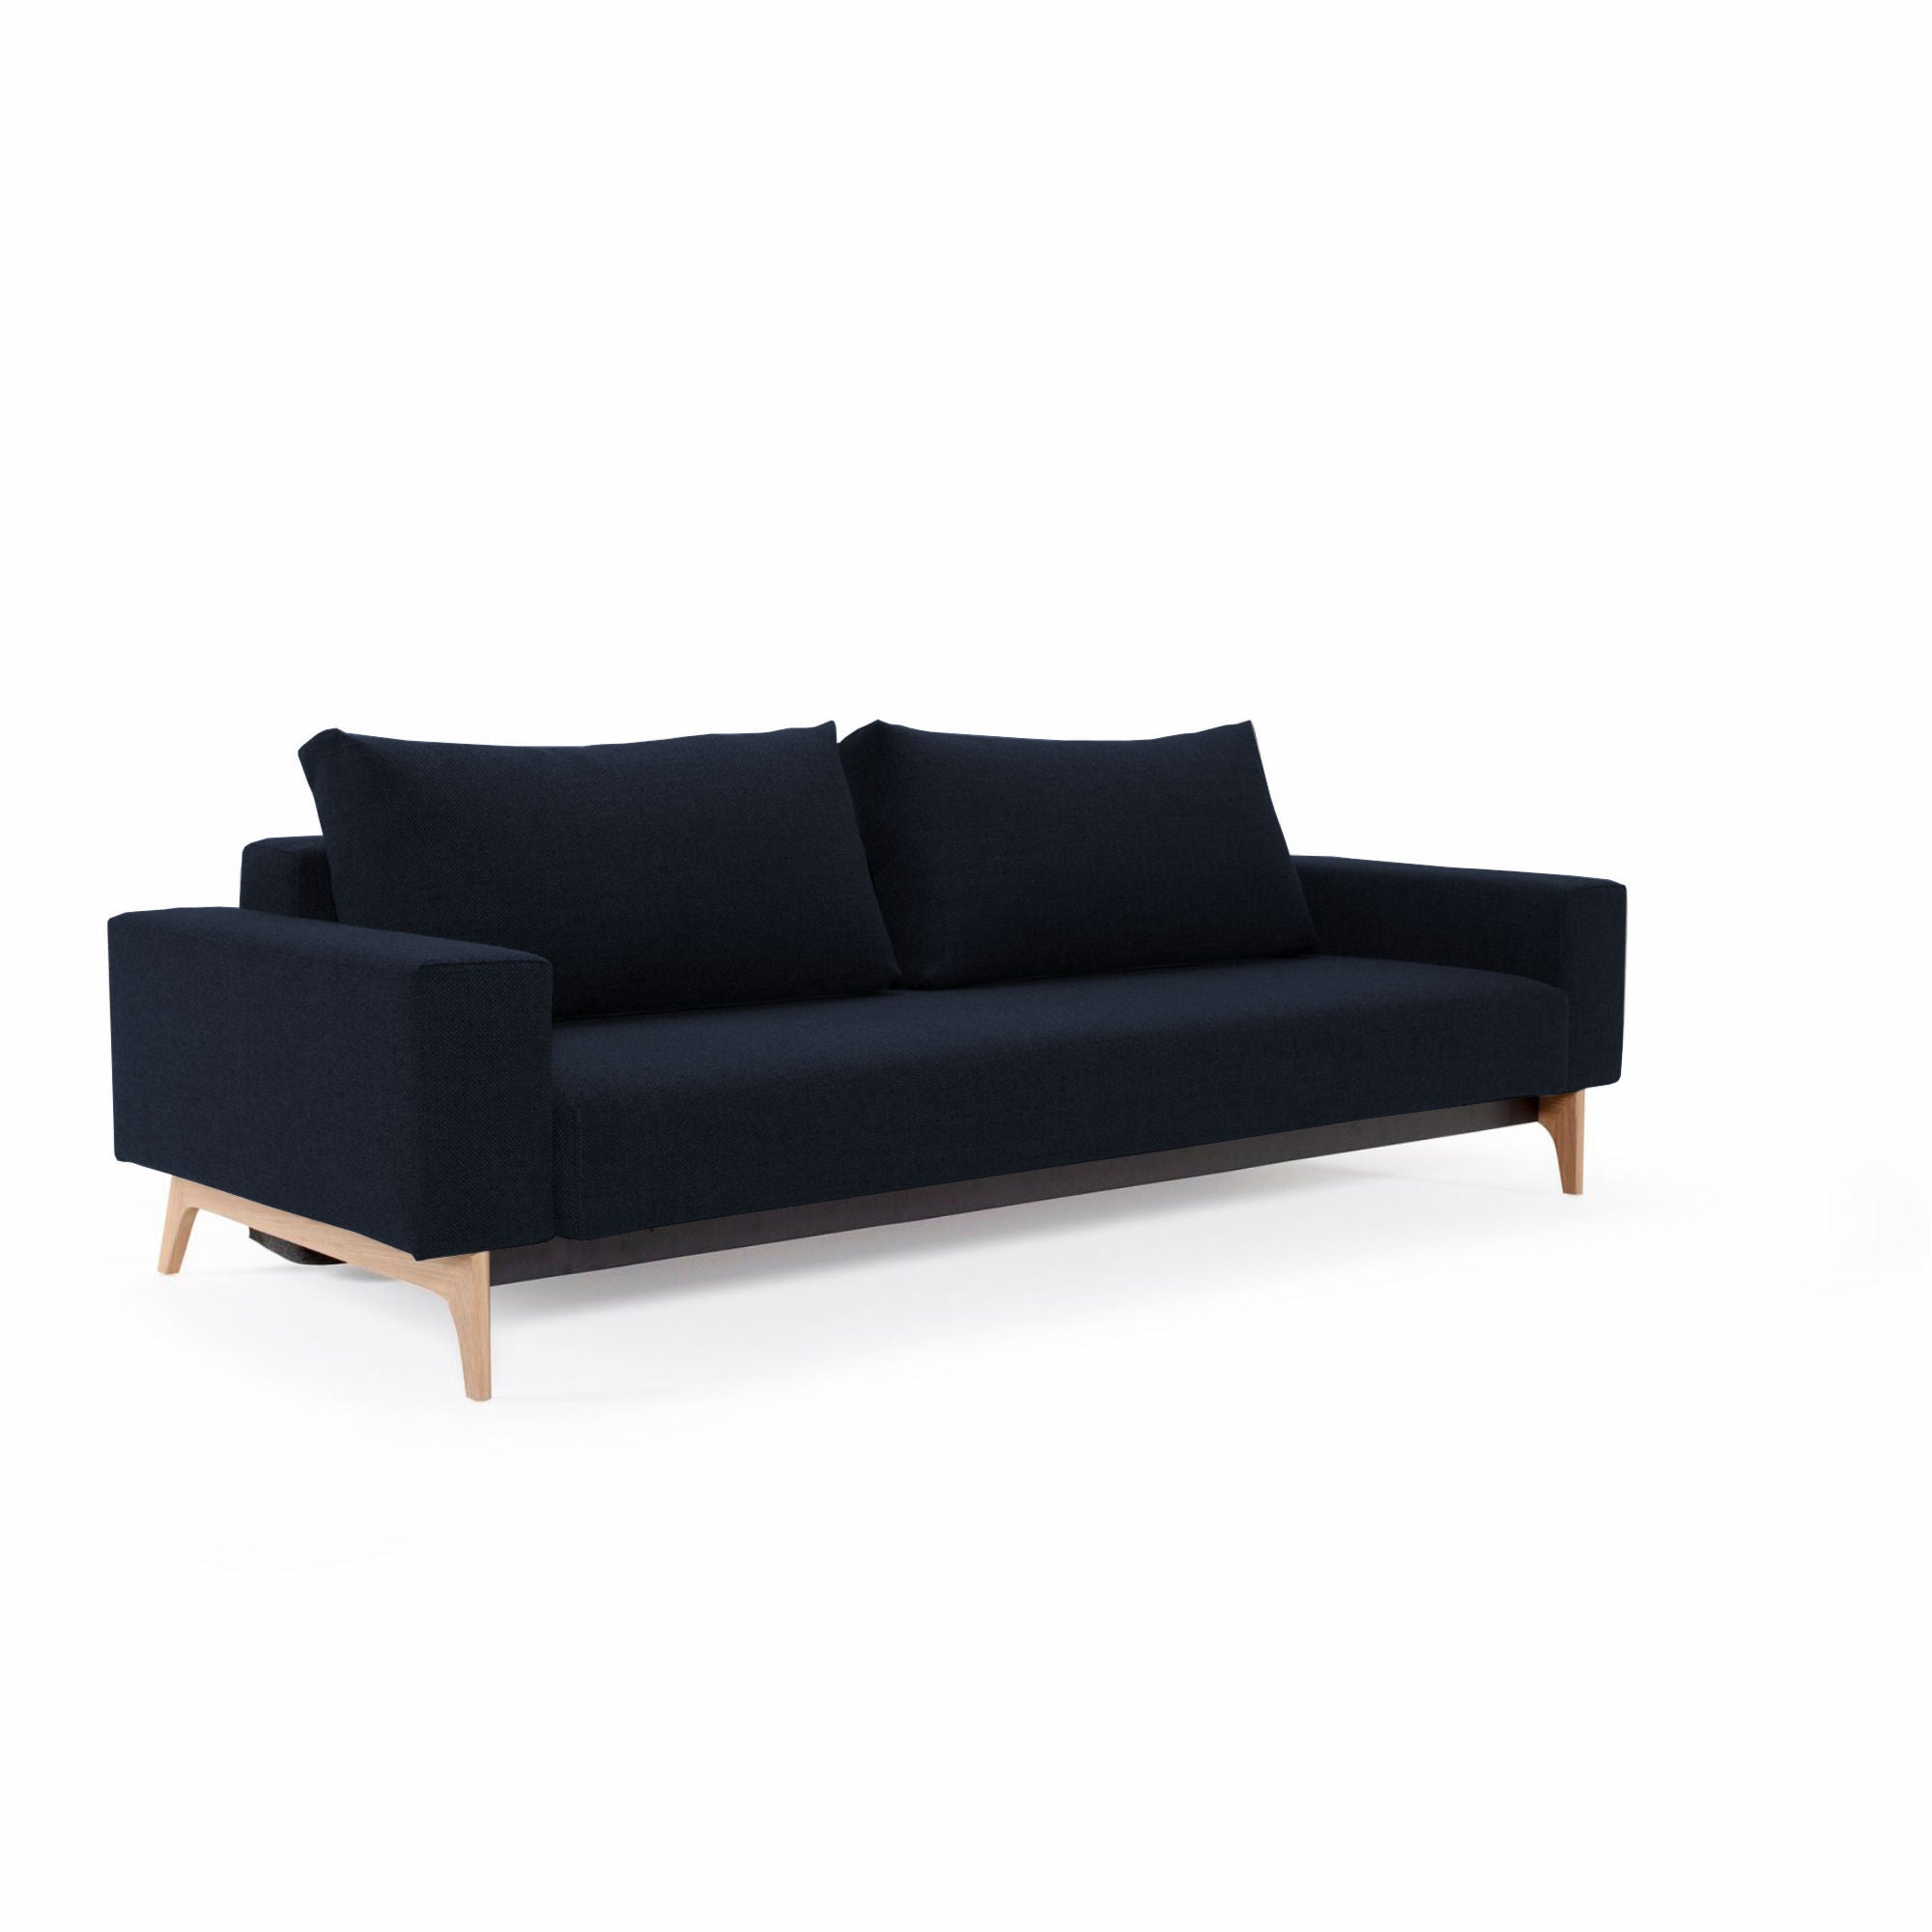 Innovation Living Idun Sofabed with Arms, 541 velvet dark blue